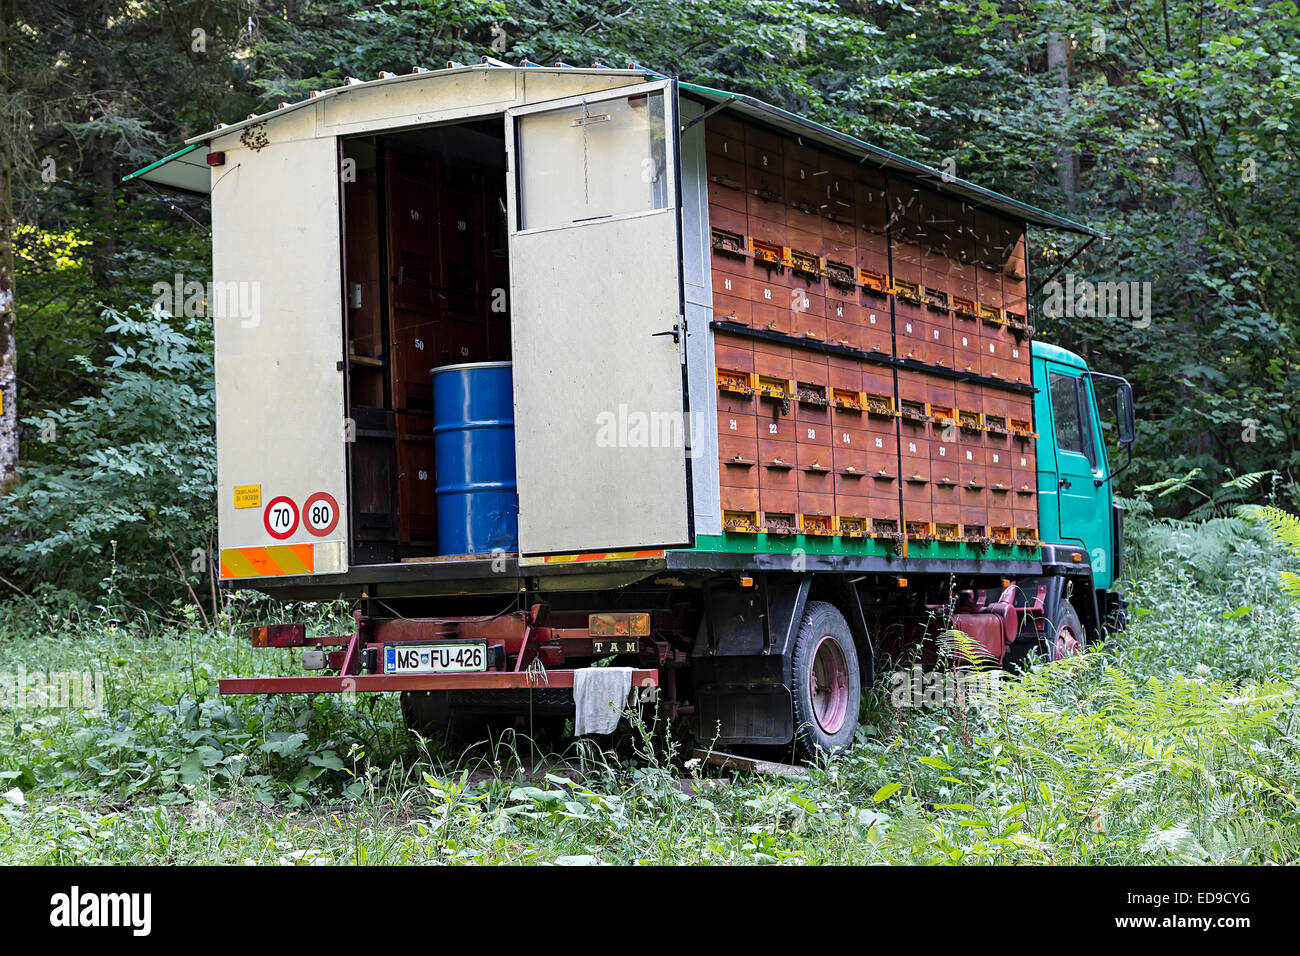 Beehives built into lorry parked in forest, Cerknica, Slovenia - Stock Image